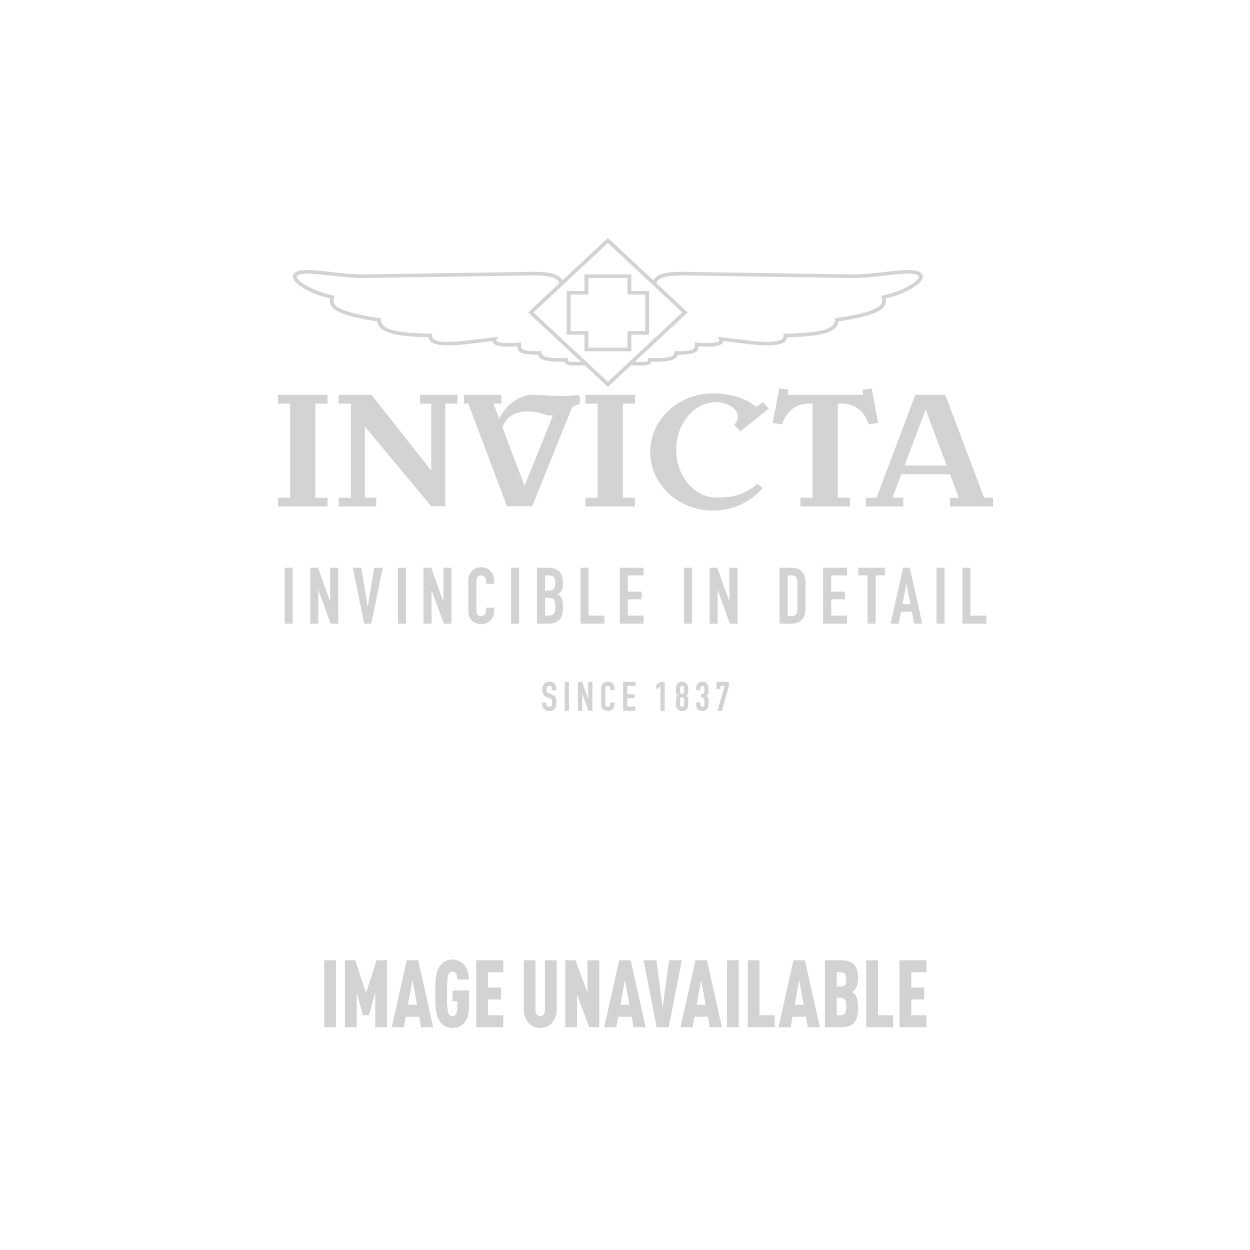 Invicta Sea Hunter  Quartz Watch - Stainless Steel case with Steel, Rose Gold tone Stainless Steel band - Model 13686